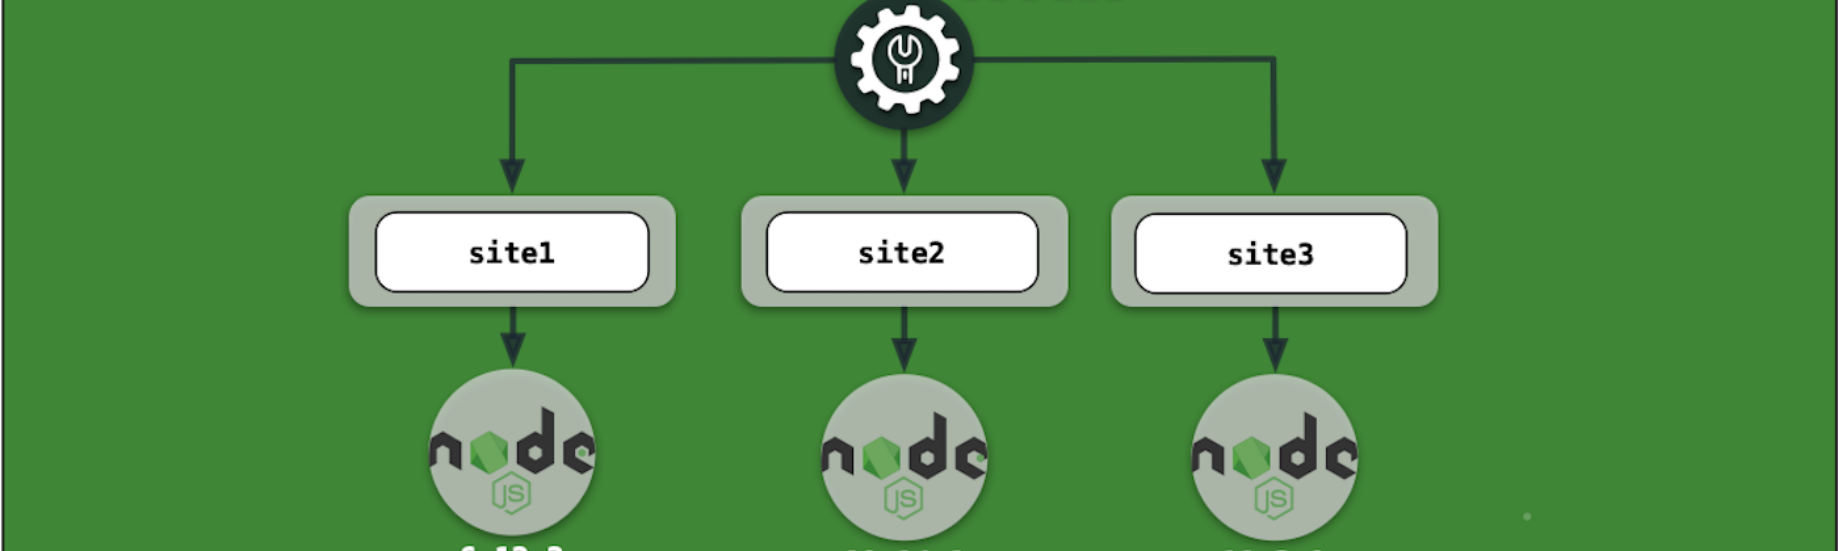 Installing Node js with NVM - Joaquin Menchaca - Medium